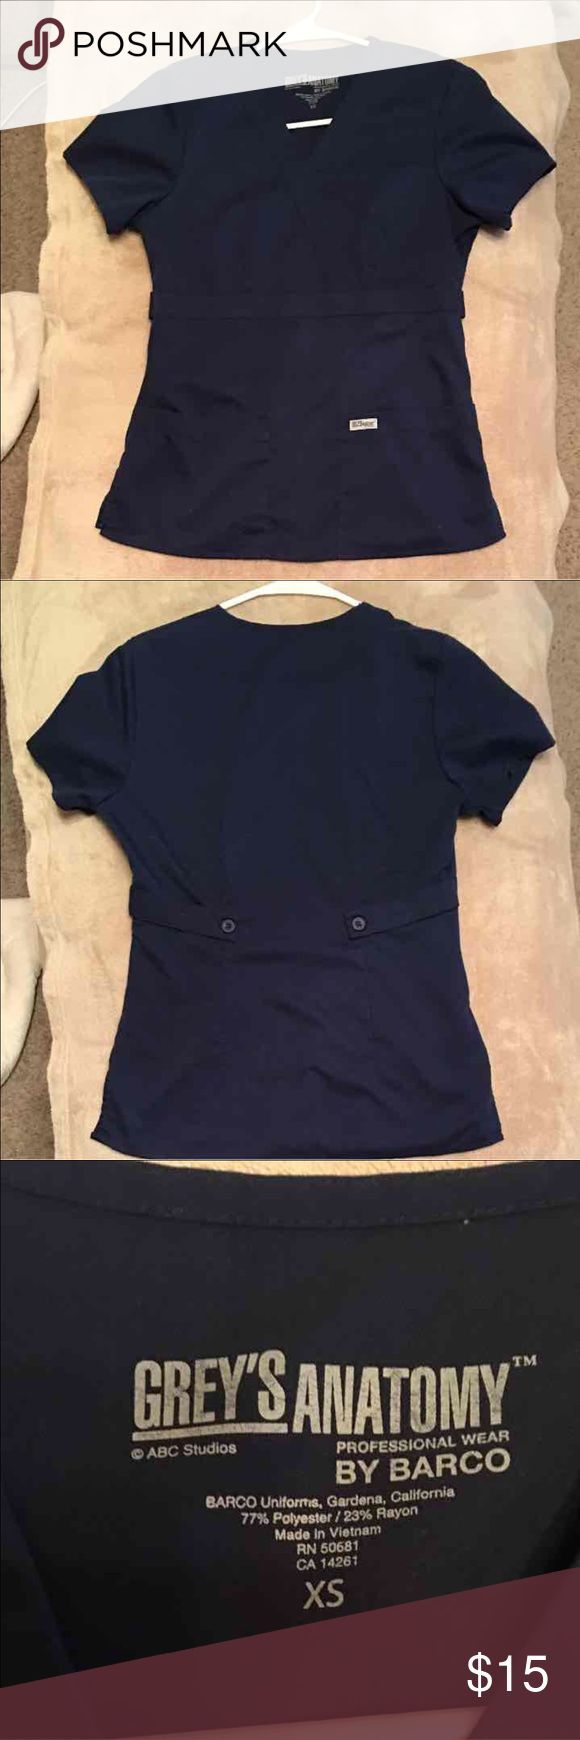 Grey's Anatomy scrub top Grey's Anatomy by Barco, size XS.  Like new condition. Bought it from the scrub store but it is too small for me. I couldn't return it because I had already removed the tags. Navy color. Tops